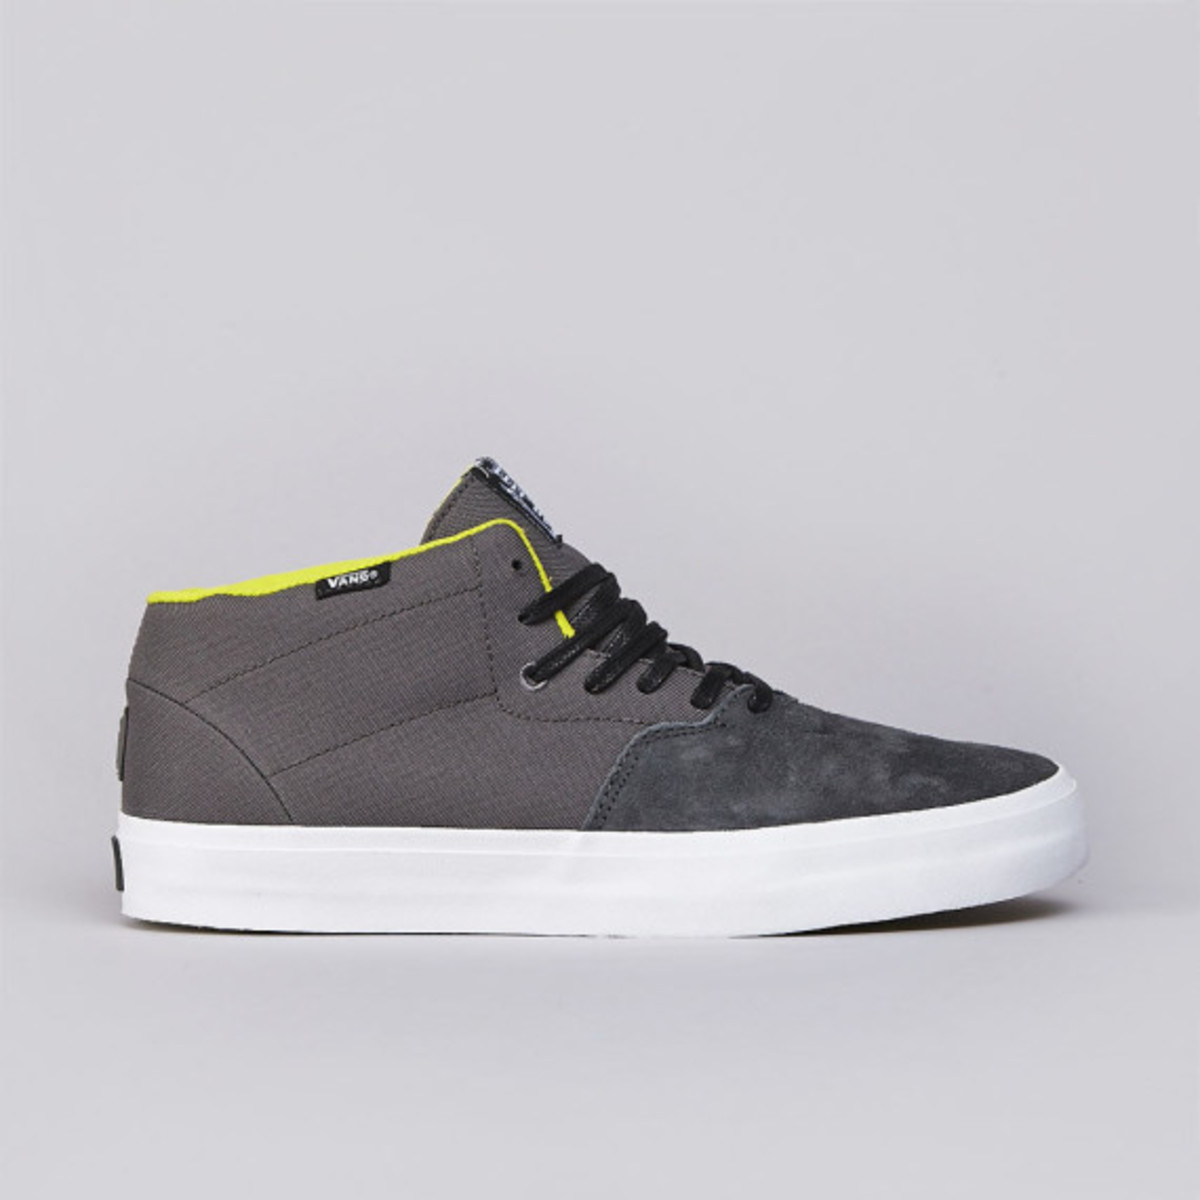 "VANS Syndicate Cab Lite ""S"" - June 2013 Releases - 1"